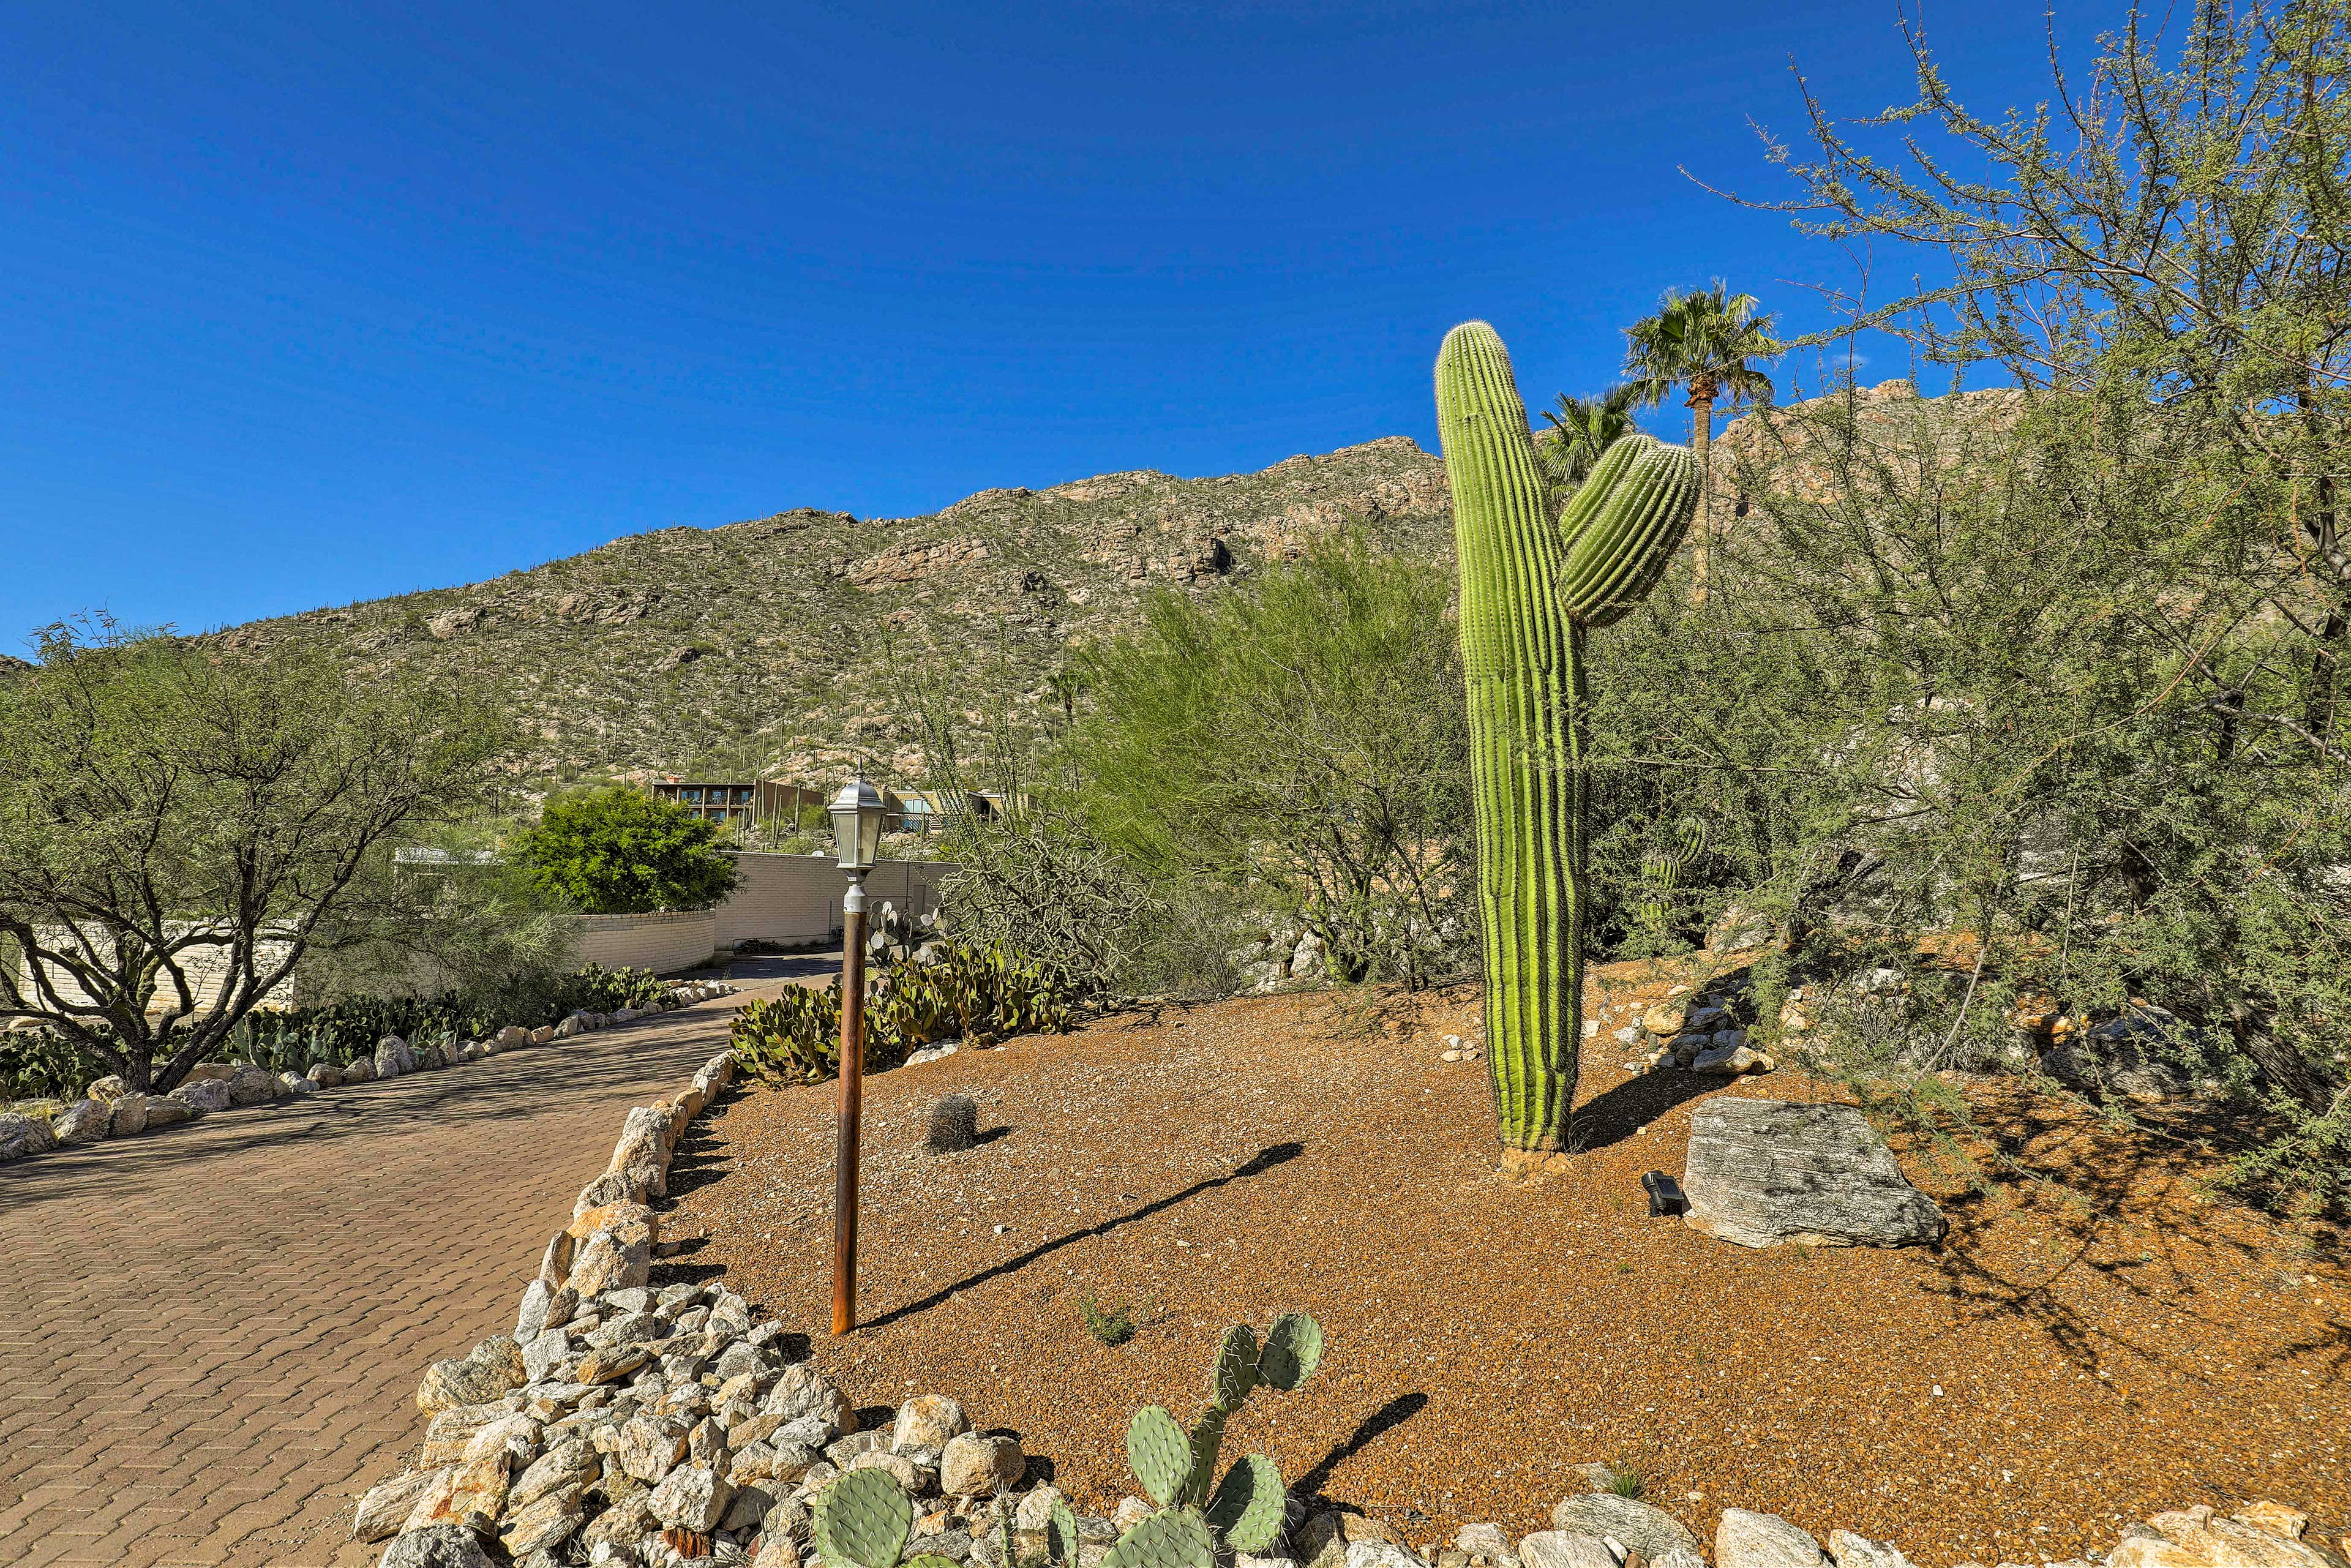 Views of the mountains and saguaro cacti are sure to impress.